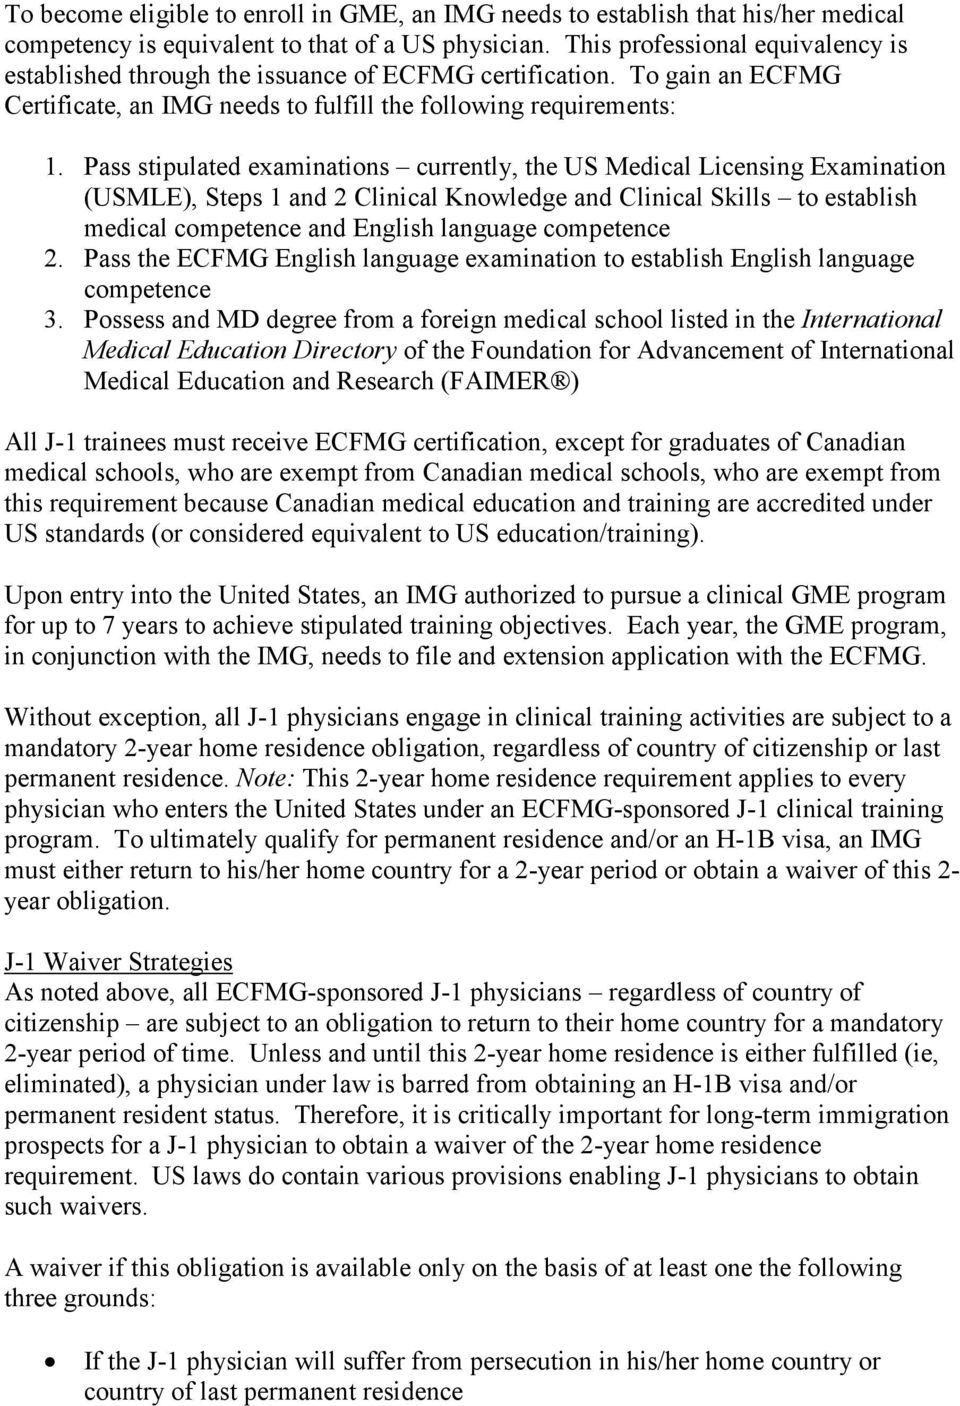 Pass stipulated examinations currently, the US Medical Licensing Examination (USMLE), Steps 1 and 2 Clinical Knowledge and Clinical Skills to establish medical competence and English language